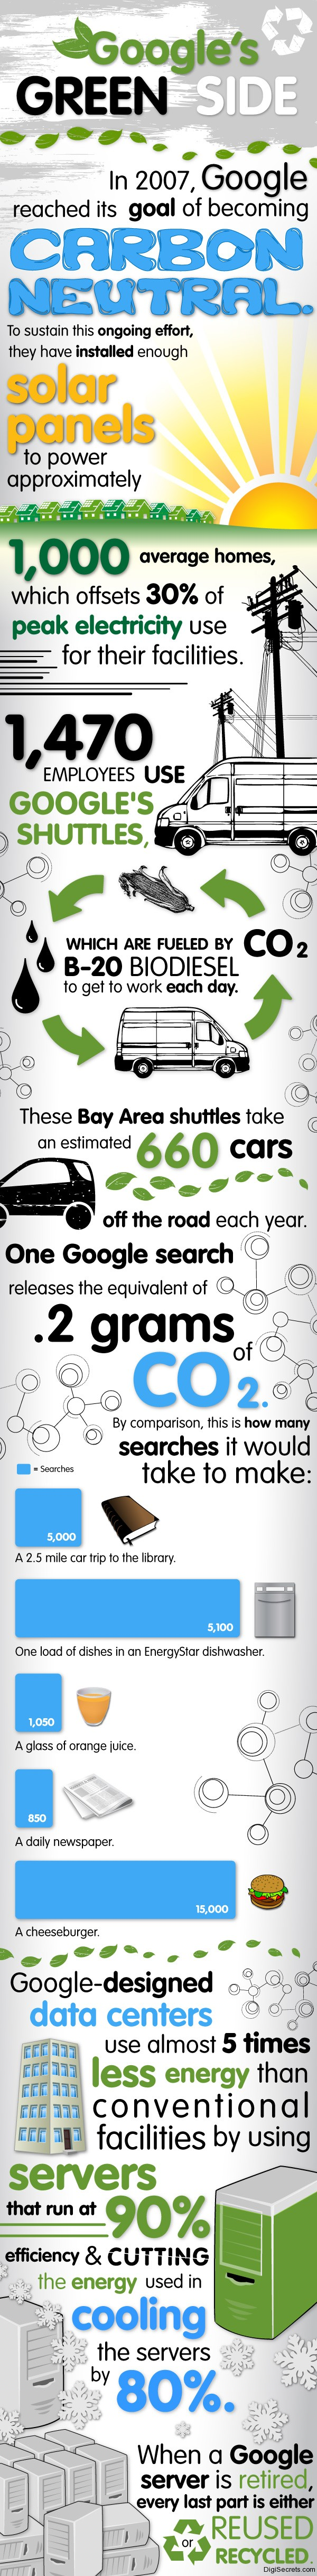 Google-Green-Side-Infographic